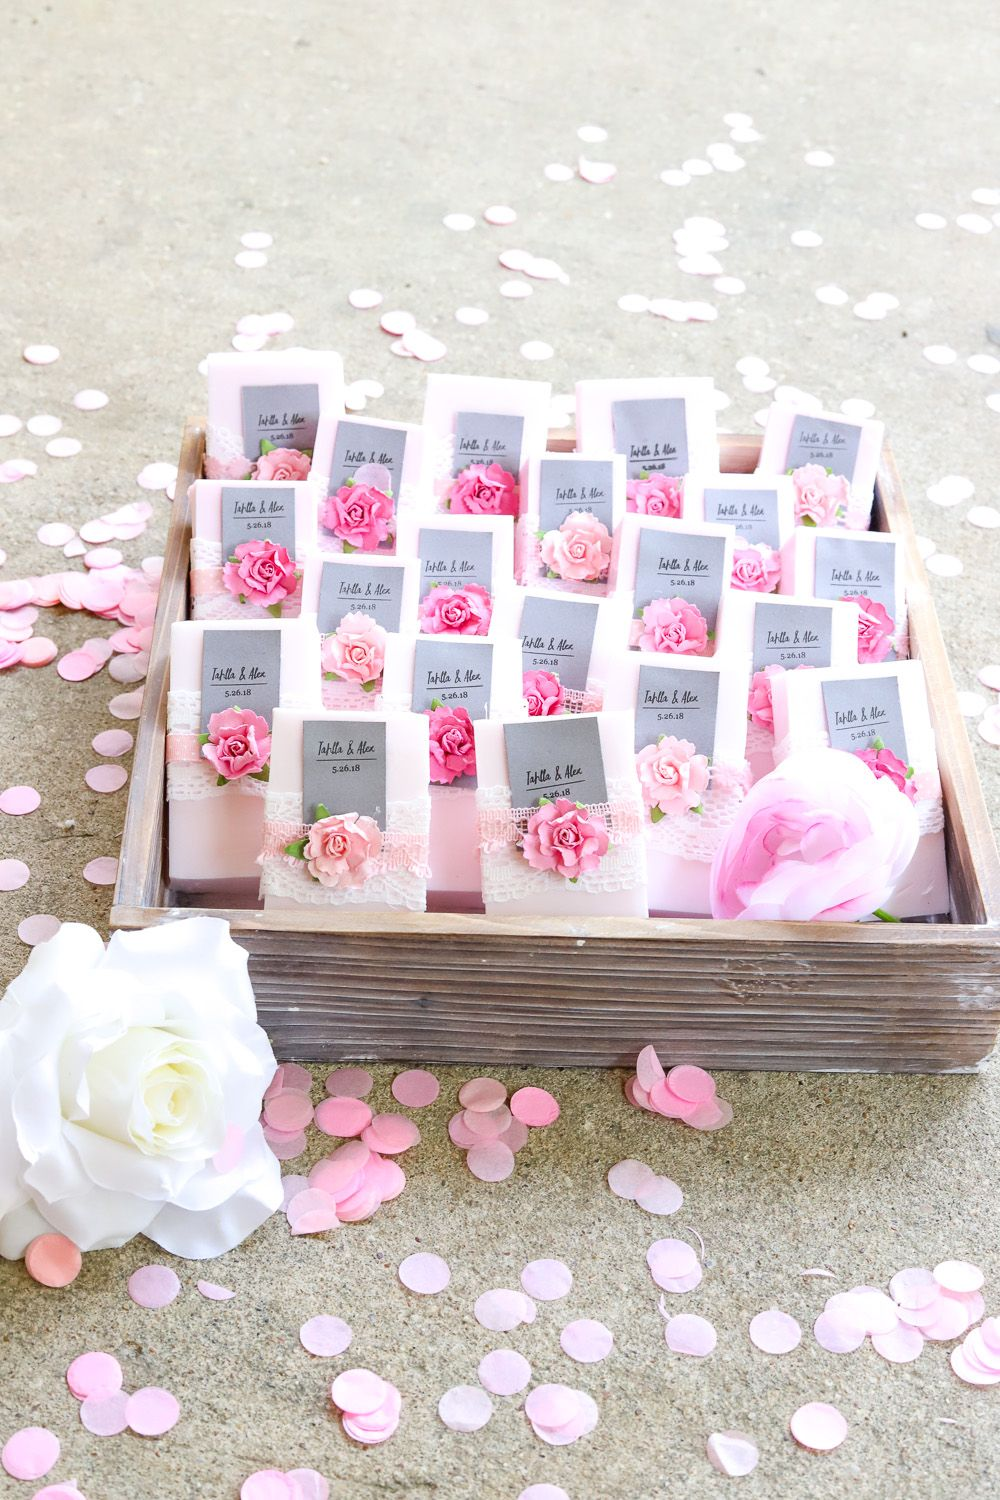 Easy DIY Wedding Favor: Personalized Soap | DIY wedding, Favors and Easy